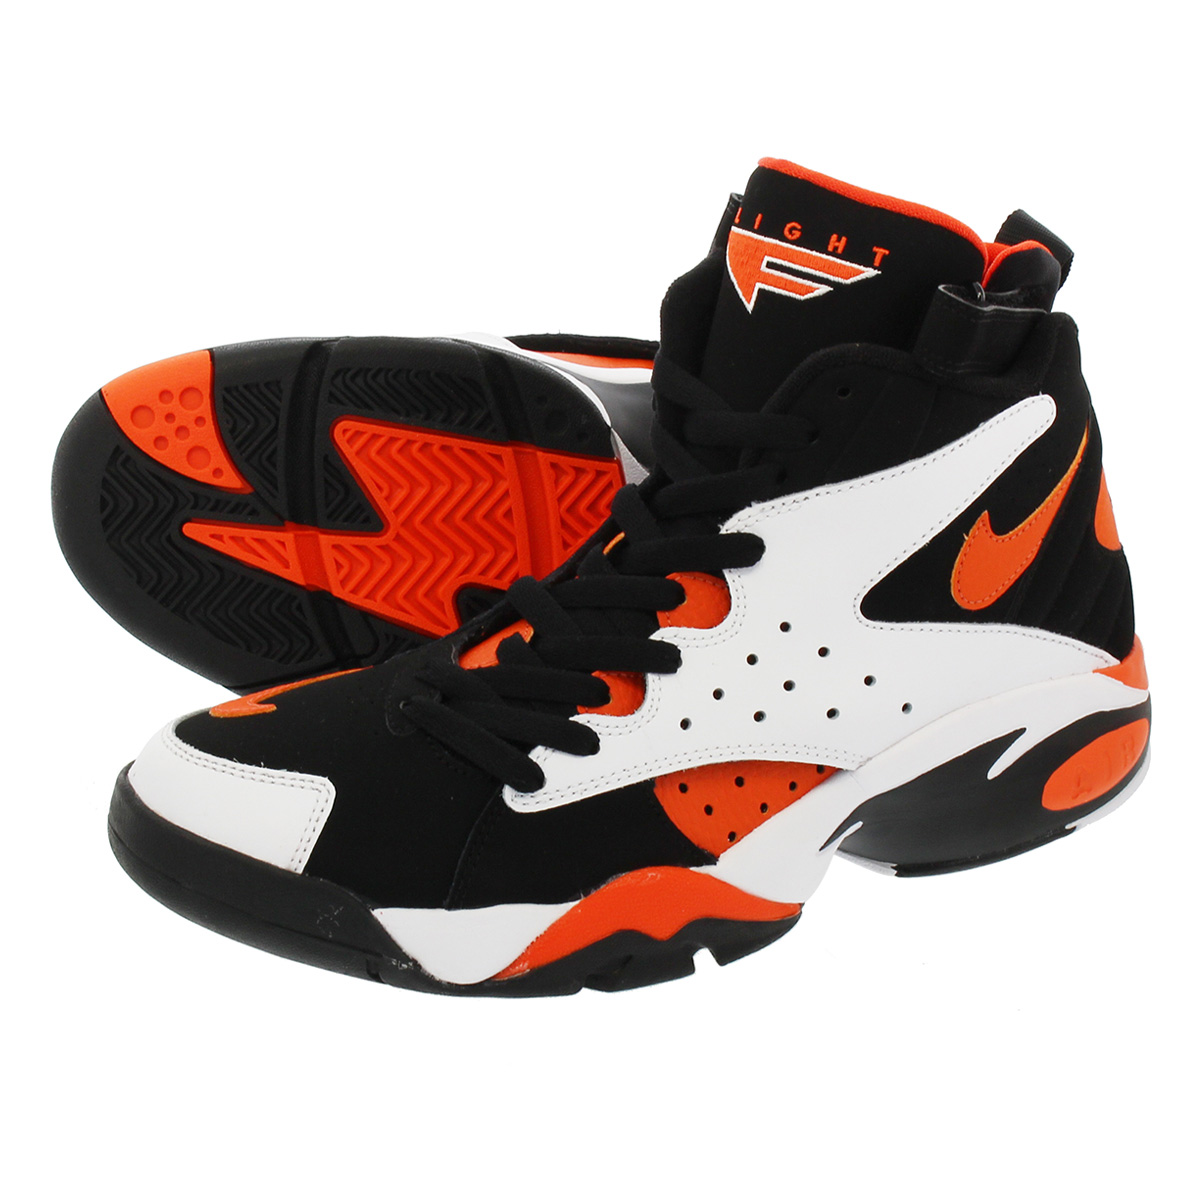 LOWTEX PLUS  NIKE AIR MAESTRO II LTD Nike air maestro 2 LTD WHITE RUSH  ORANGE BLACK  e367aaa0545e